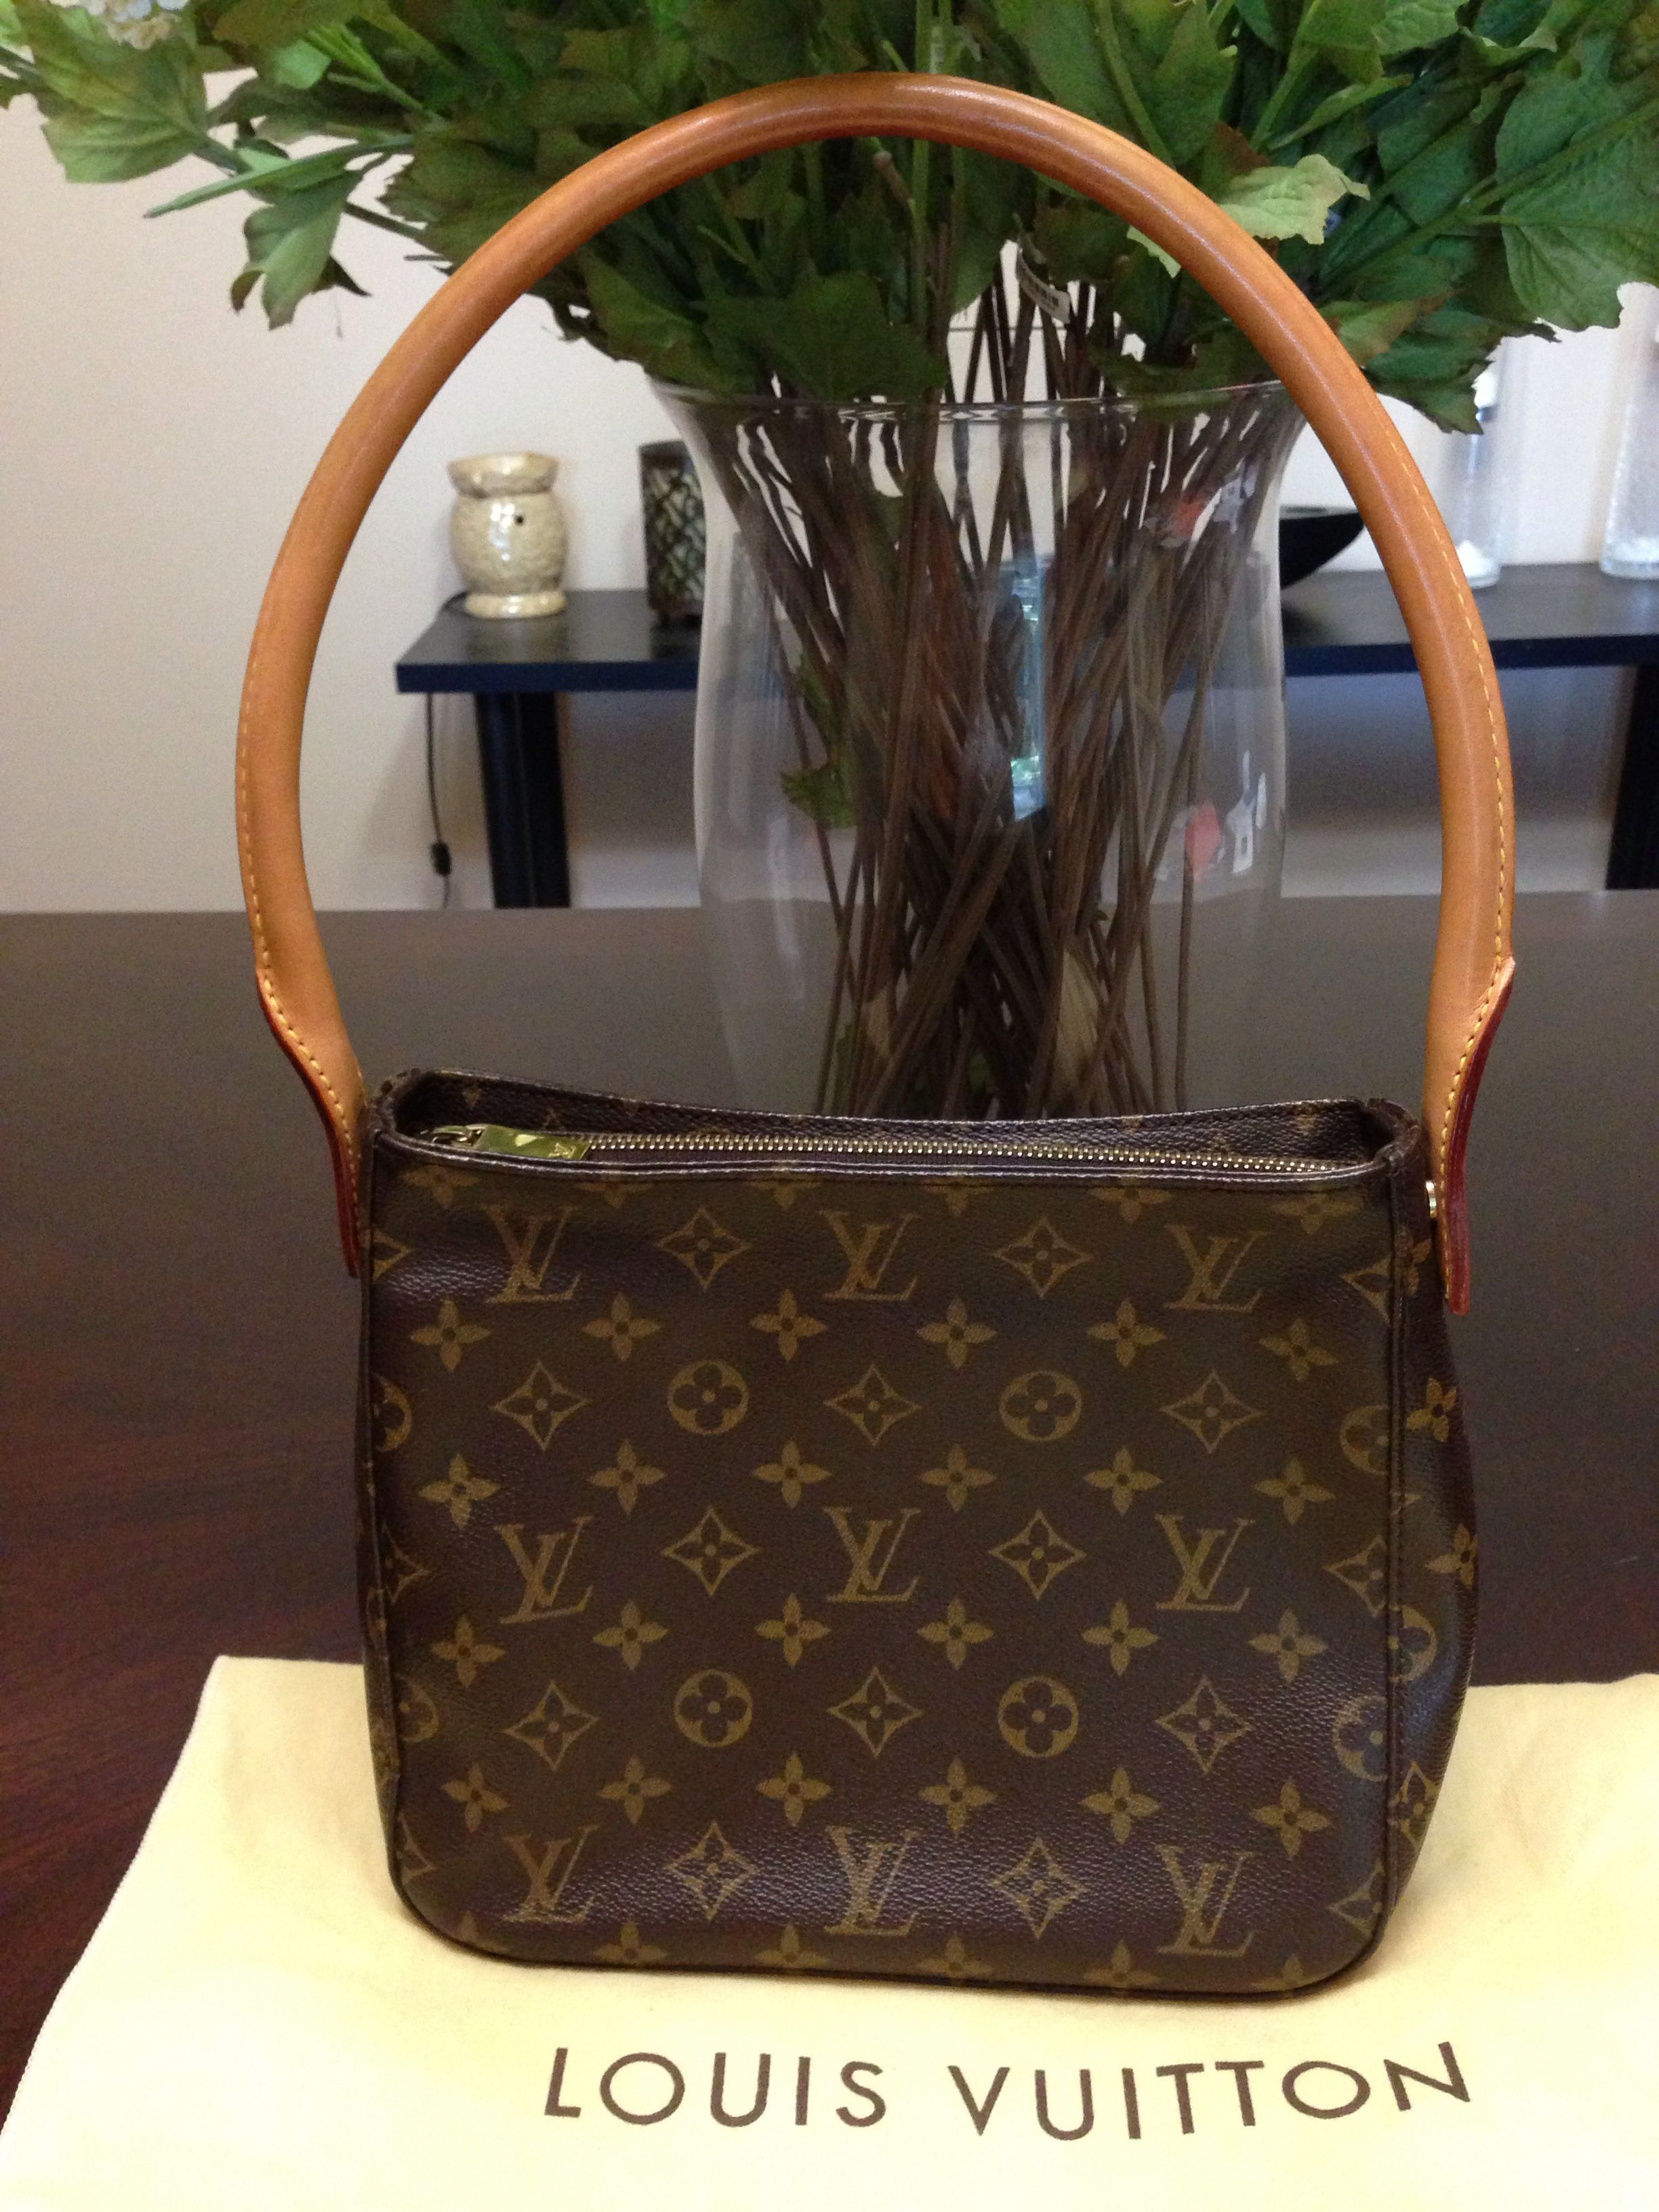 Lv Looping Bag Swap For It Today At Www Swapcouture